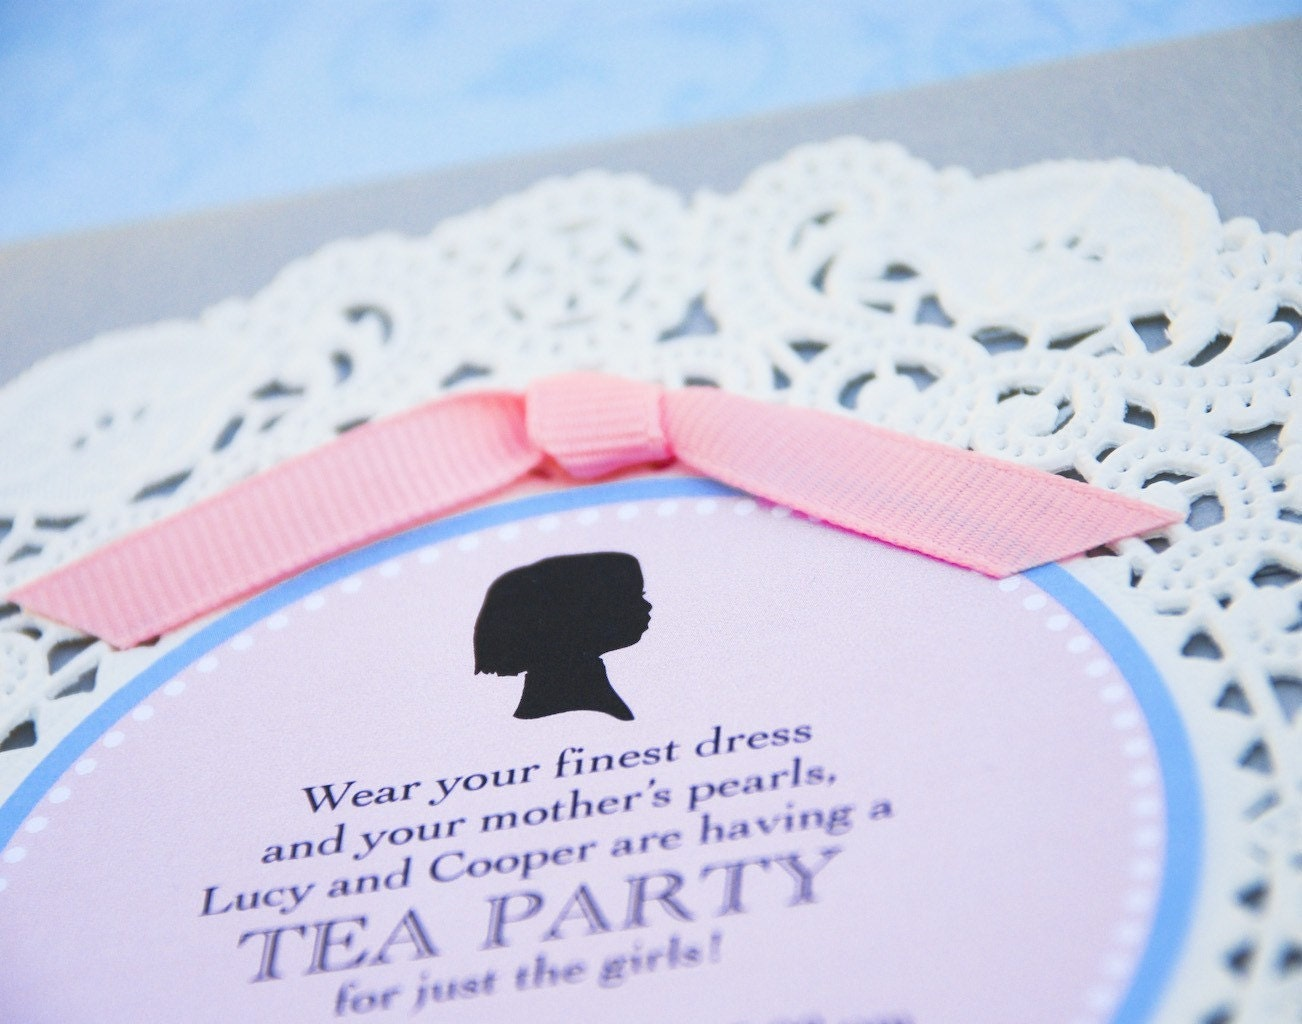 Silhouette and Doily Tea Party Invitation Design Fee